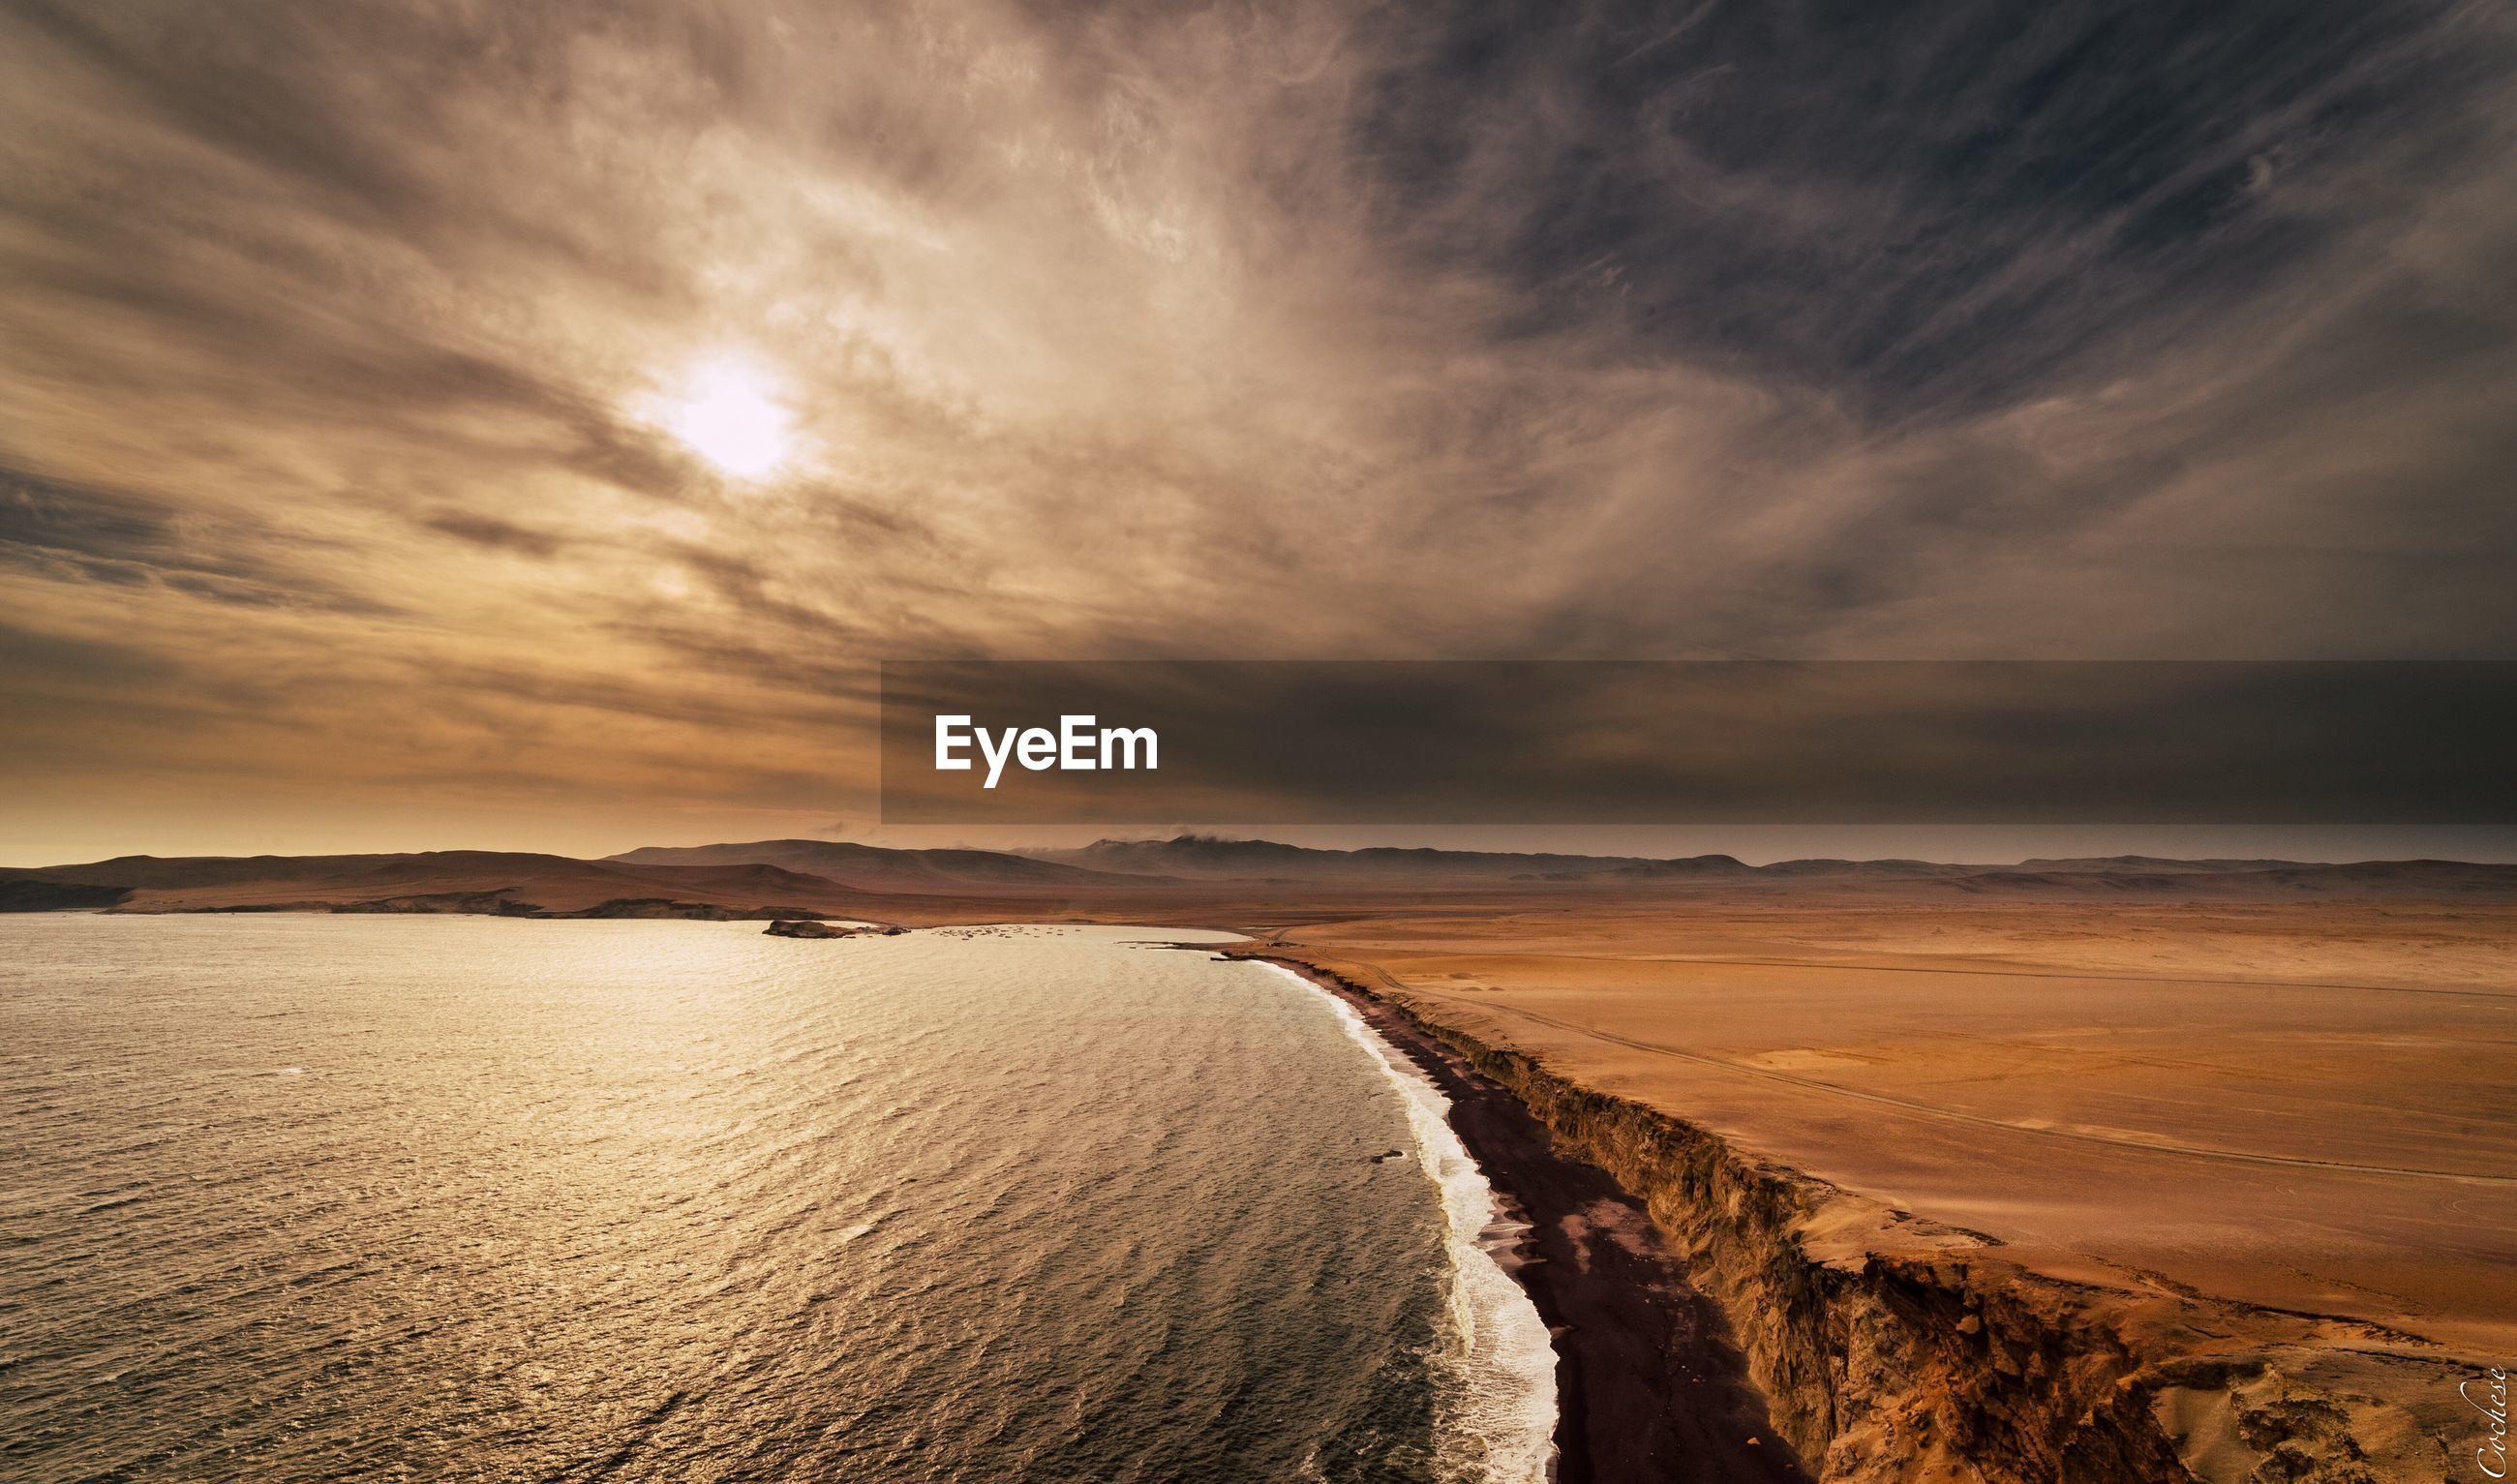 SCENIC VIEW OF SEA DURING SUNSET